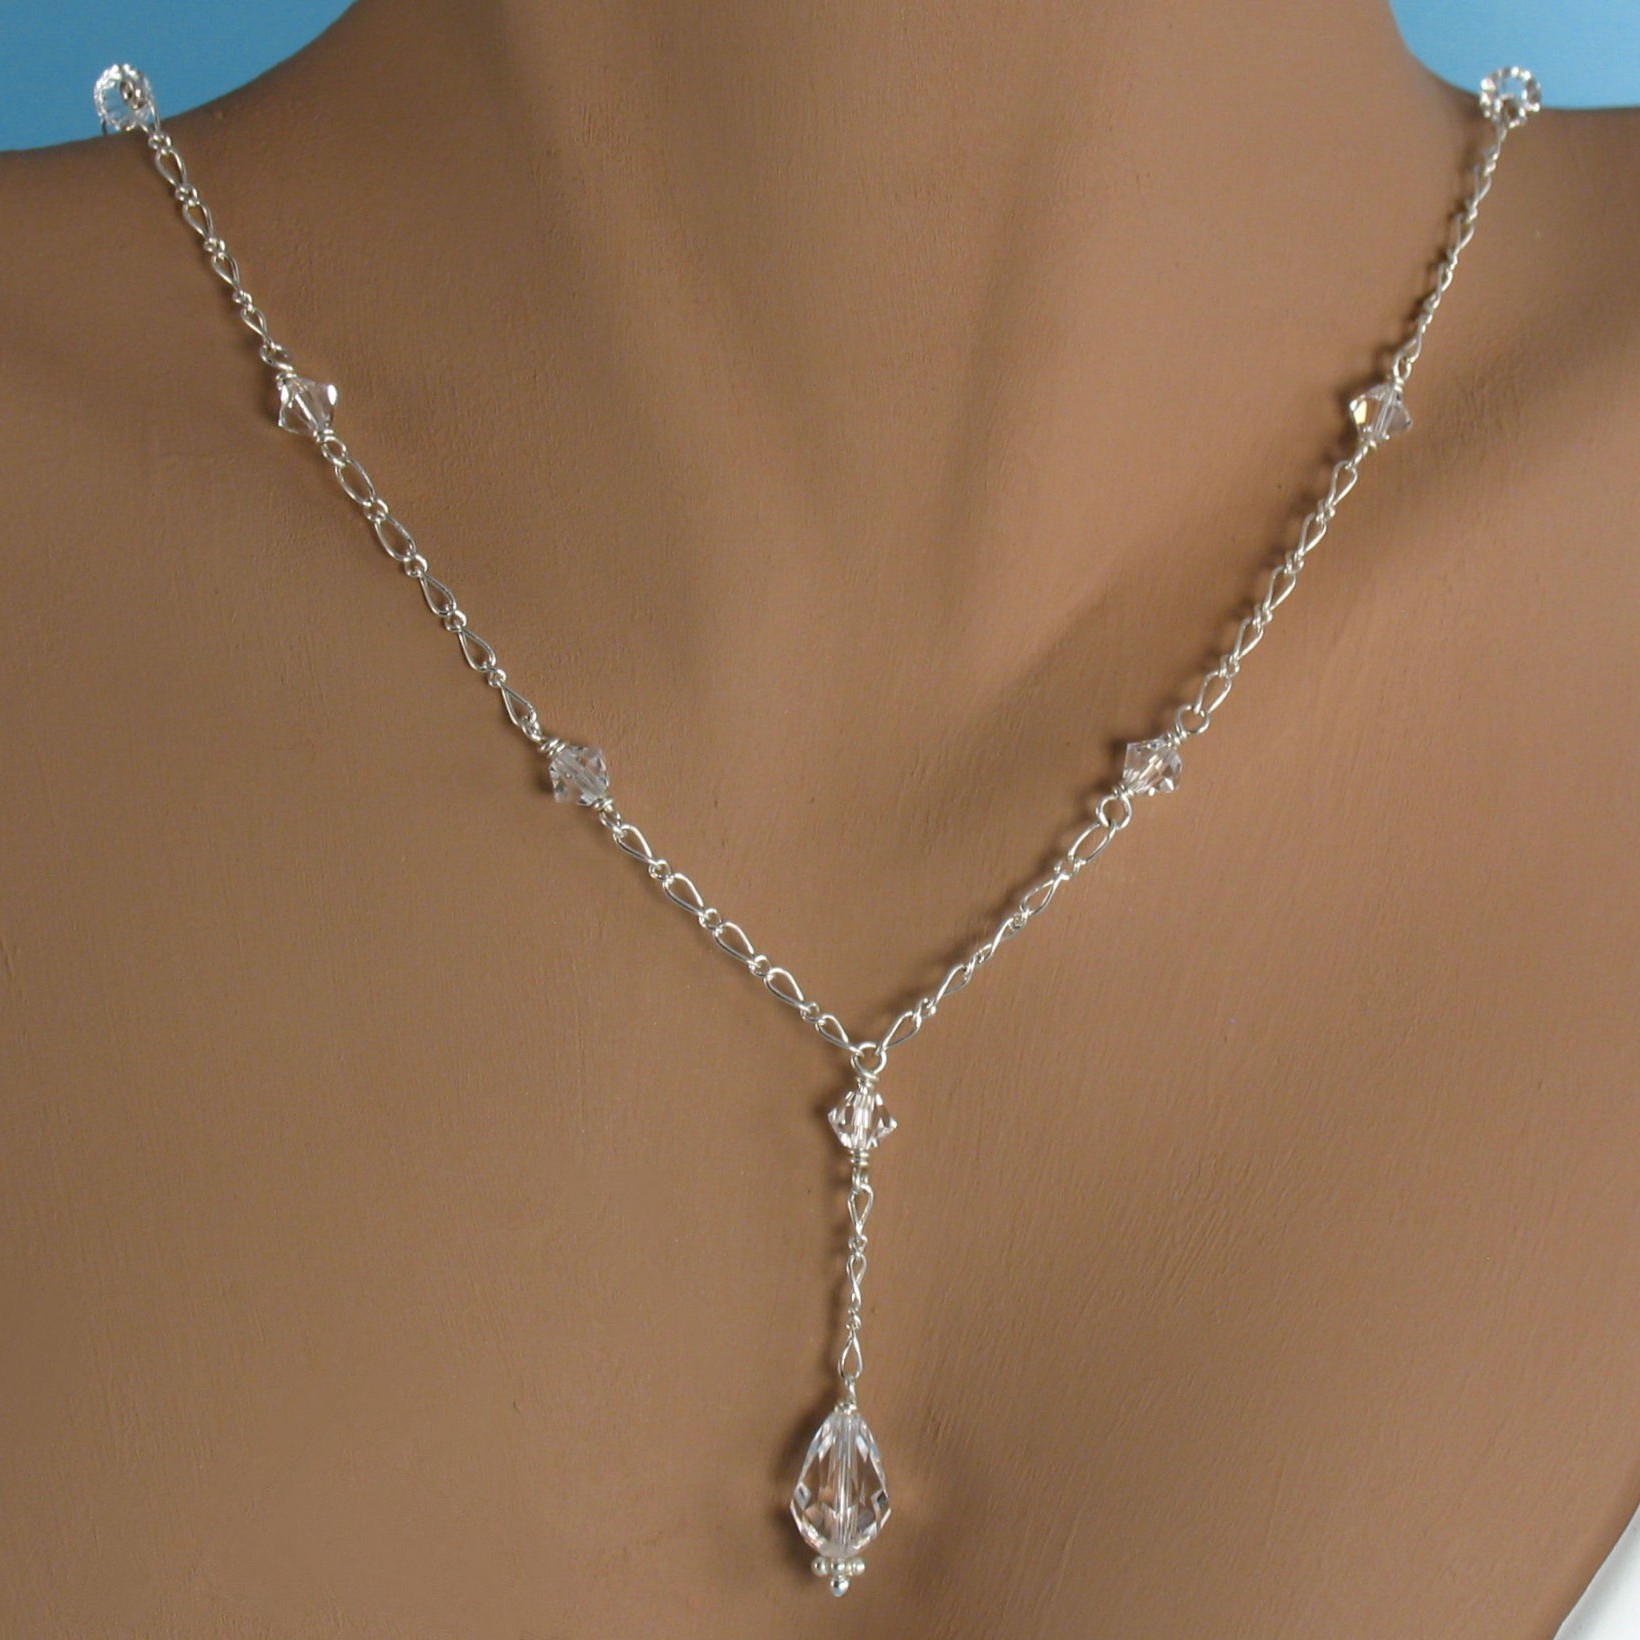 Jewelry, silver, Necklaces, Bride, Accessories, Bridesmaid, Bridal, Crystal, Necklace, Weddings, Swarovski, Teardrop, Sterling, Handmade by diana, Chain